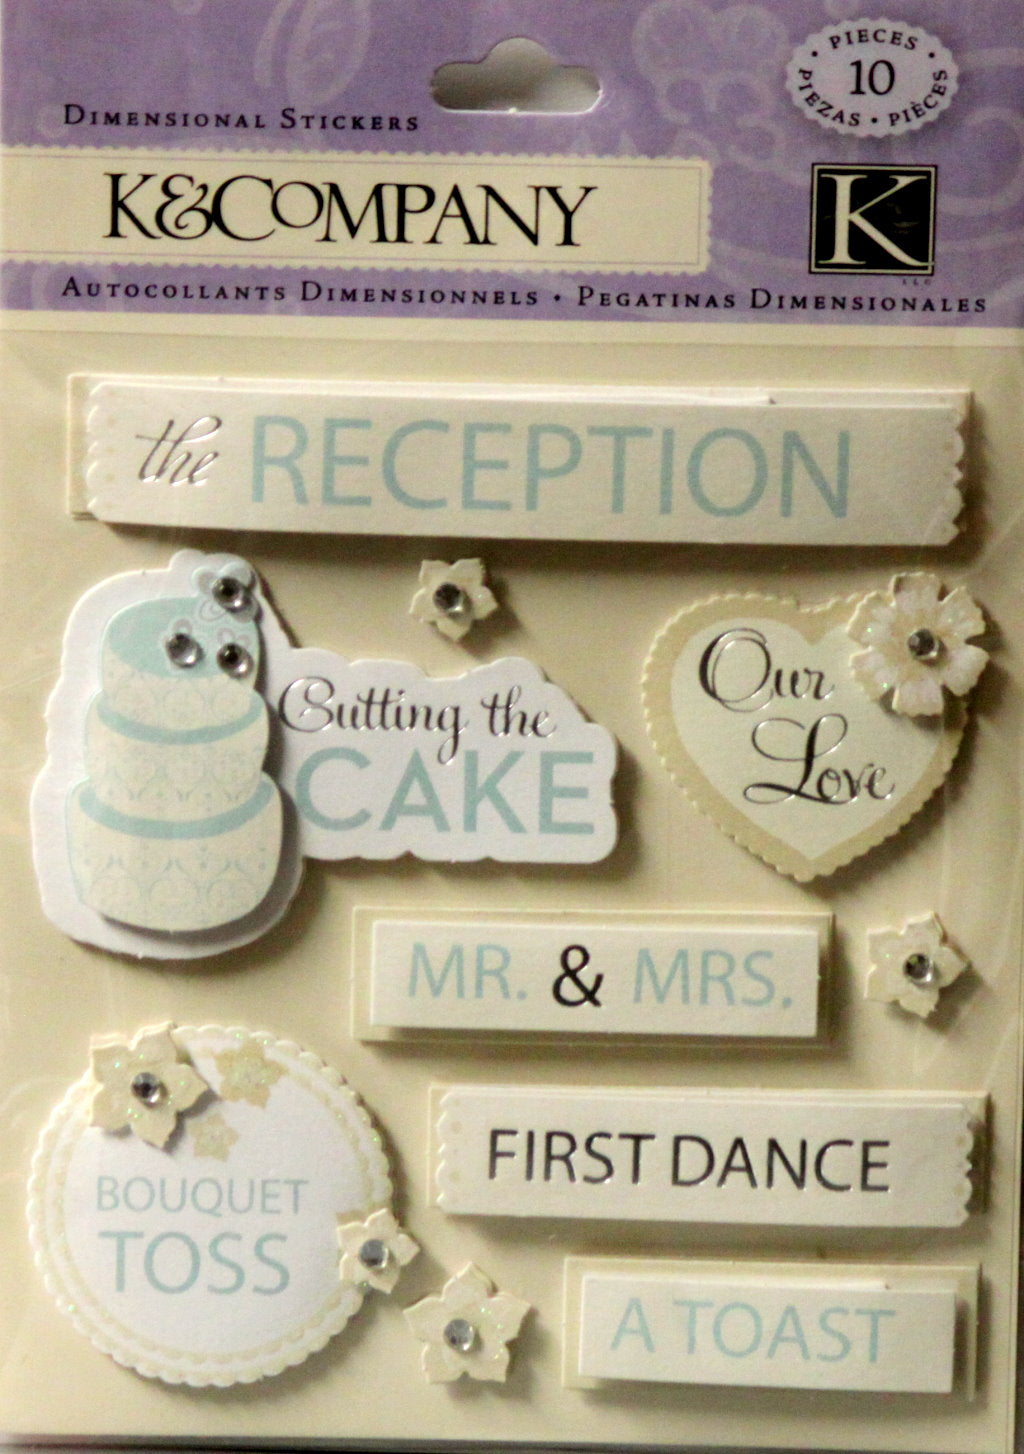 K & Company Wedding Reception Dimensional Stickers